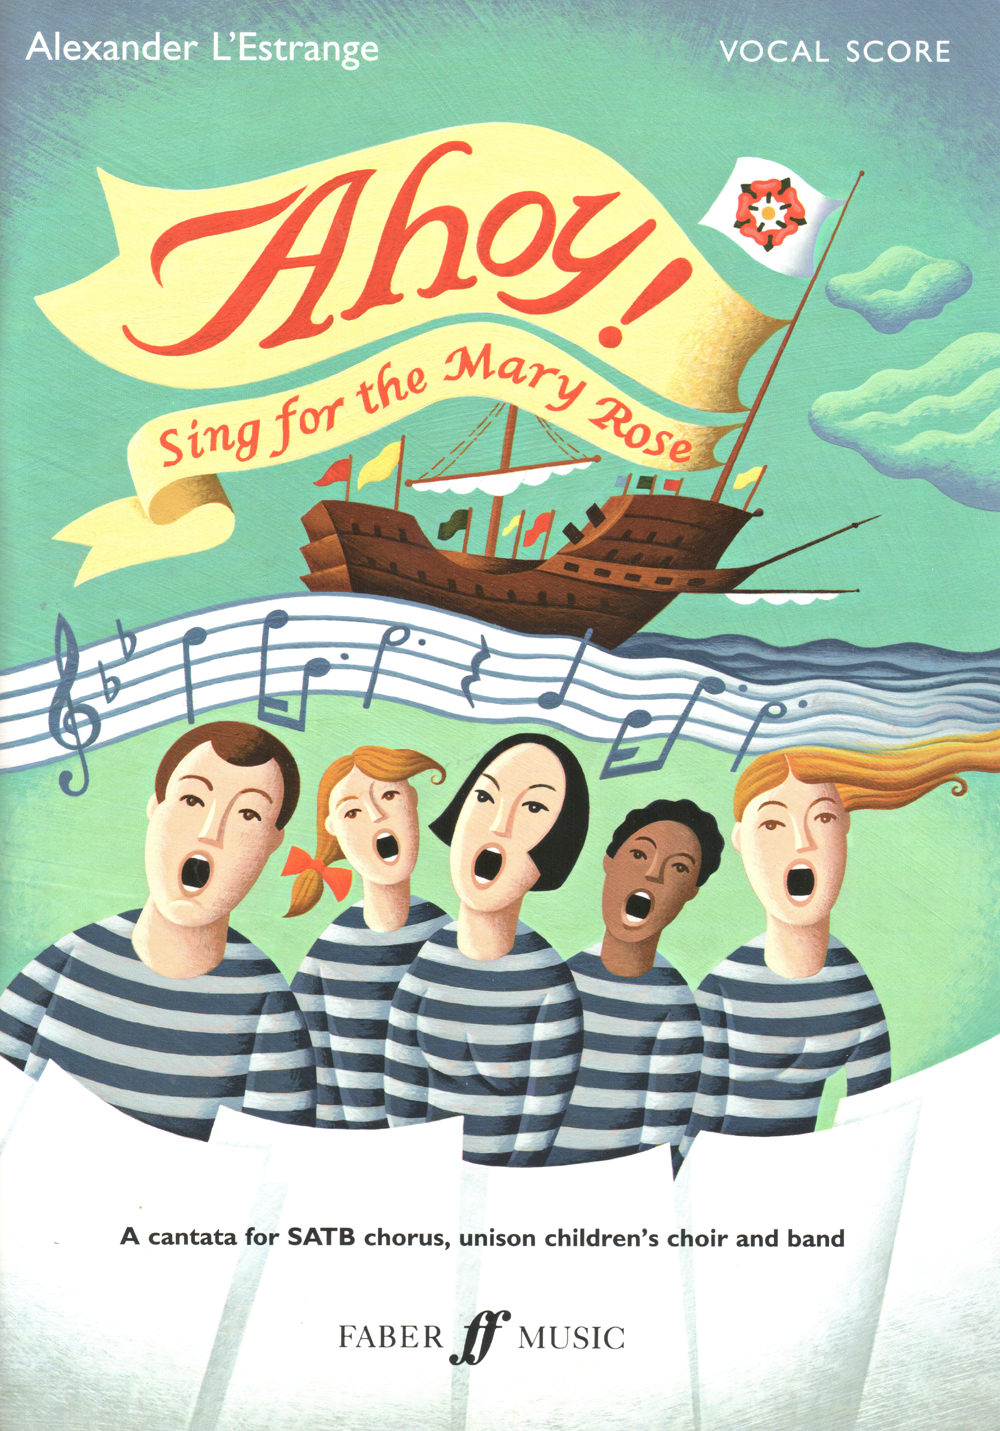 Book Cover - Ahoy! Sing for the Mary Rose